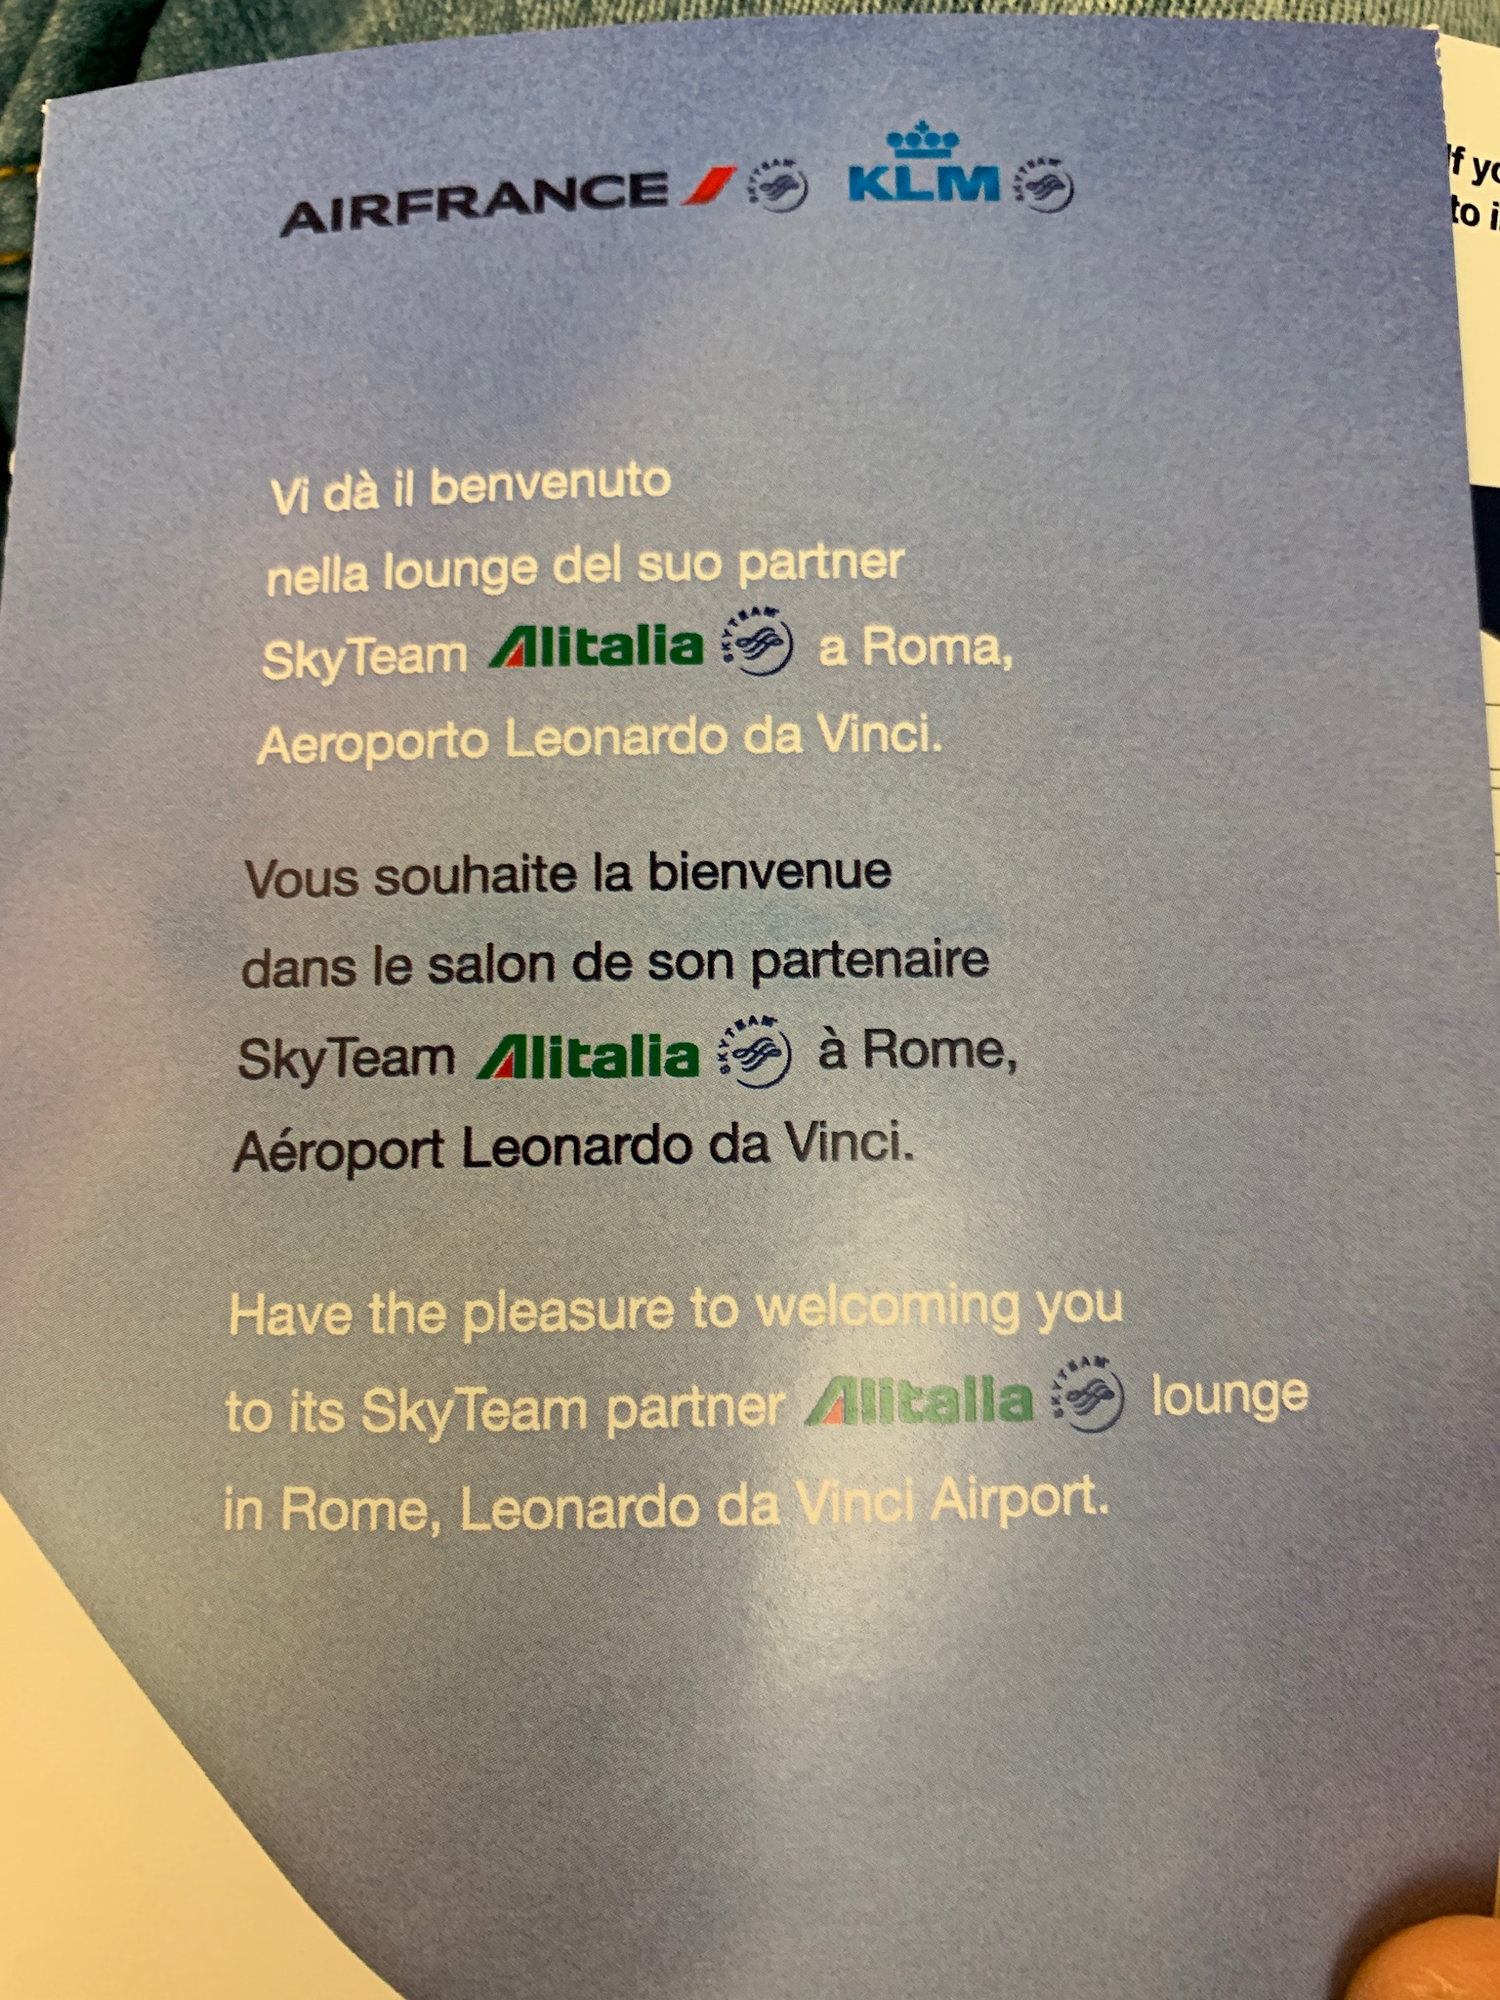 Casa Dolce Casa Roma air france lounges and contract lounges master thread - page